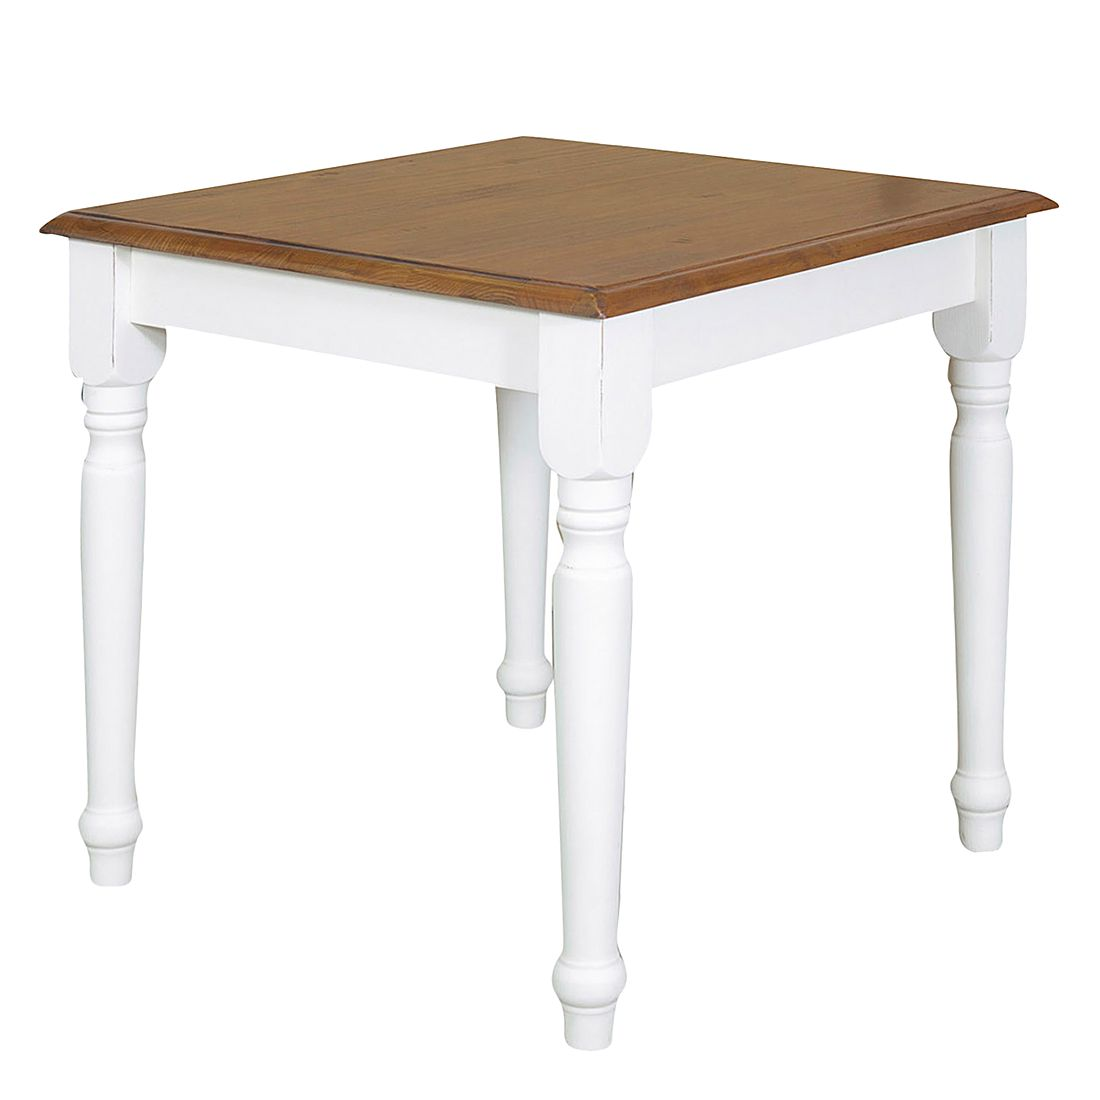 table manger massello ii extractible tilleul massif blanc marron 80 x 80 cm sans. Black Bedroom Furniture Sets. Home Design Ideas